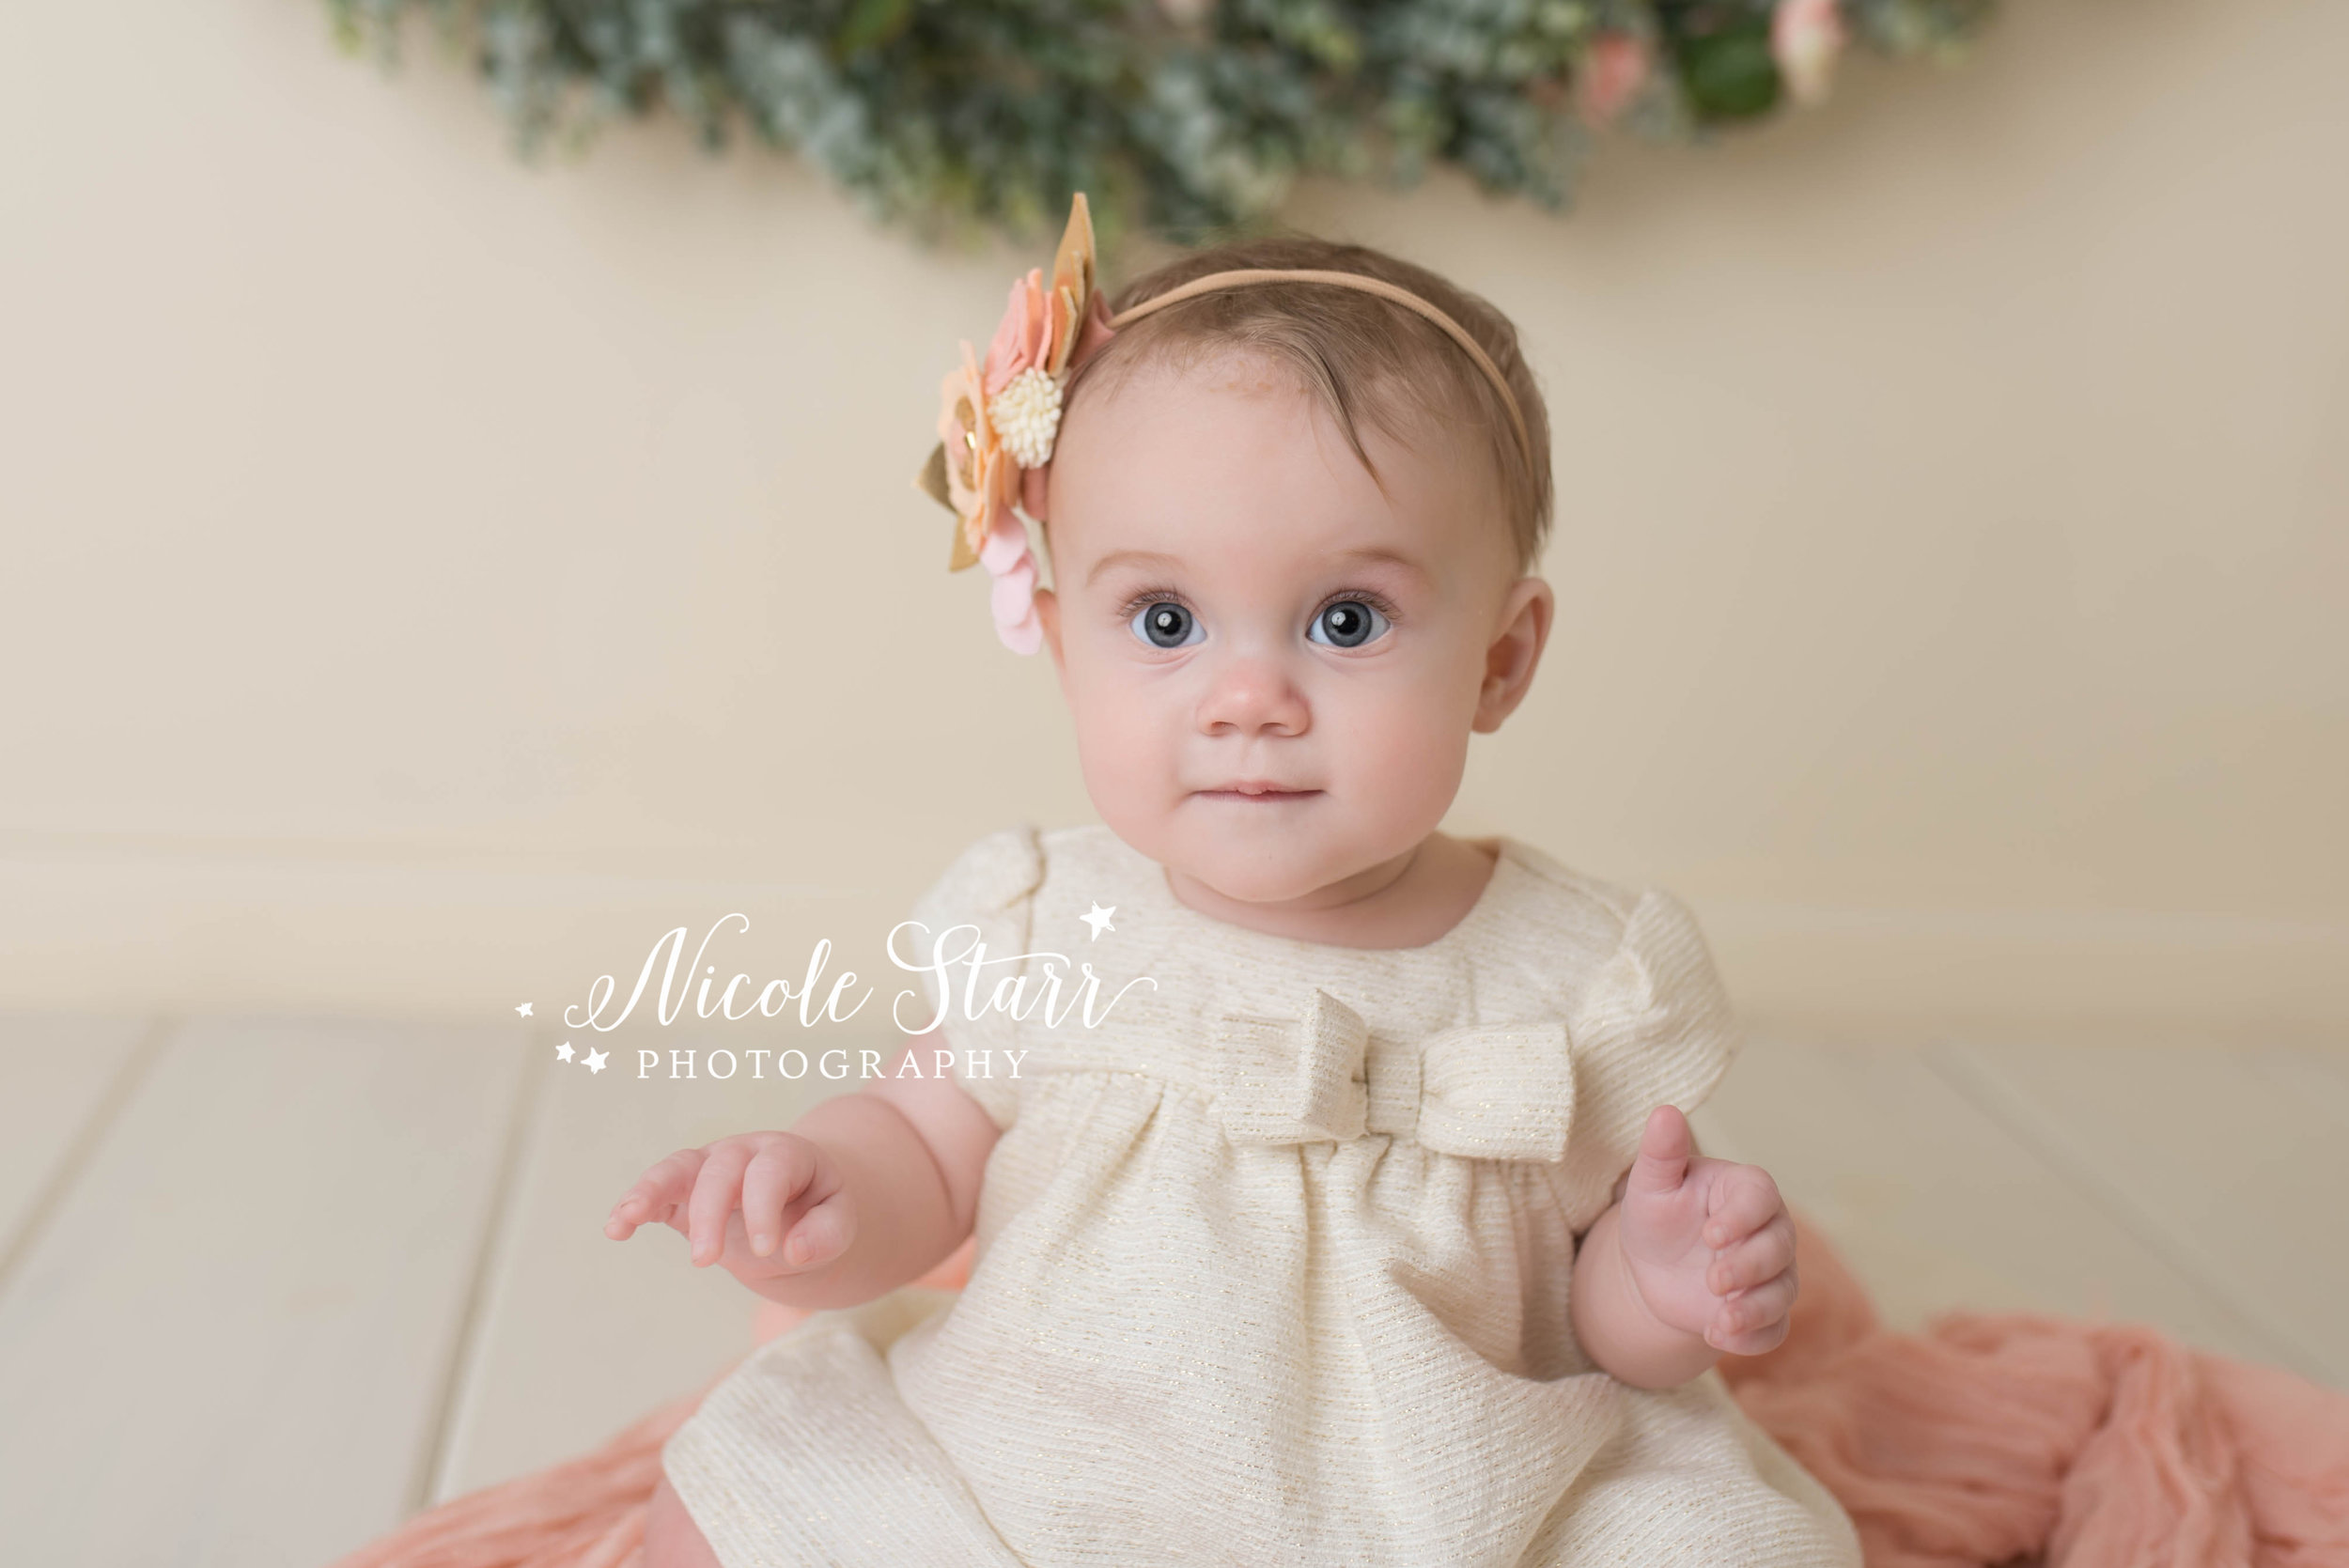 Nicole Starr Photography | Saratoga Springs, NY | springtime children's photography